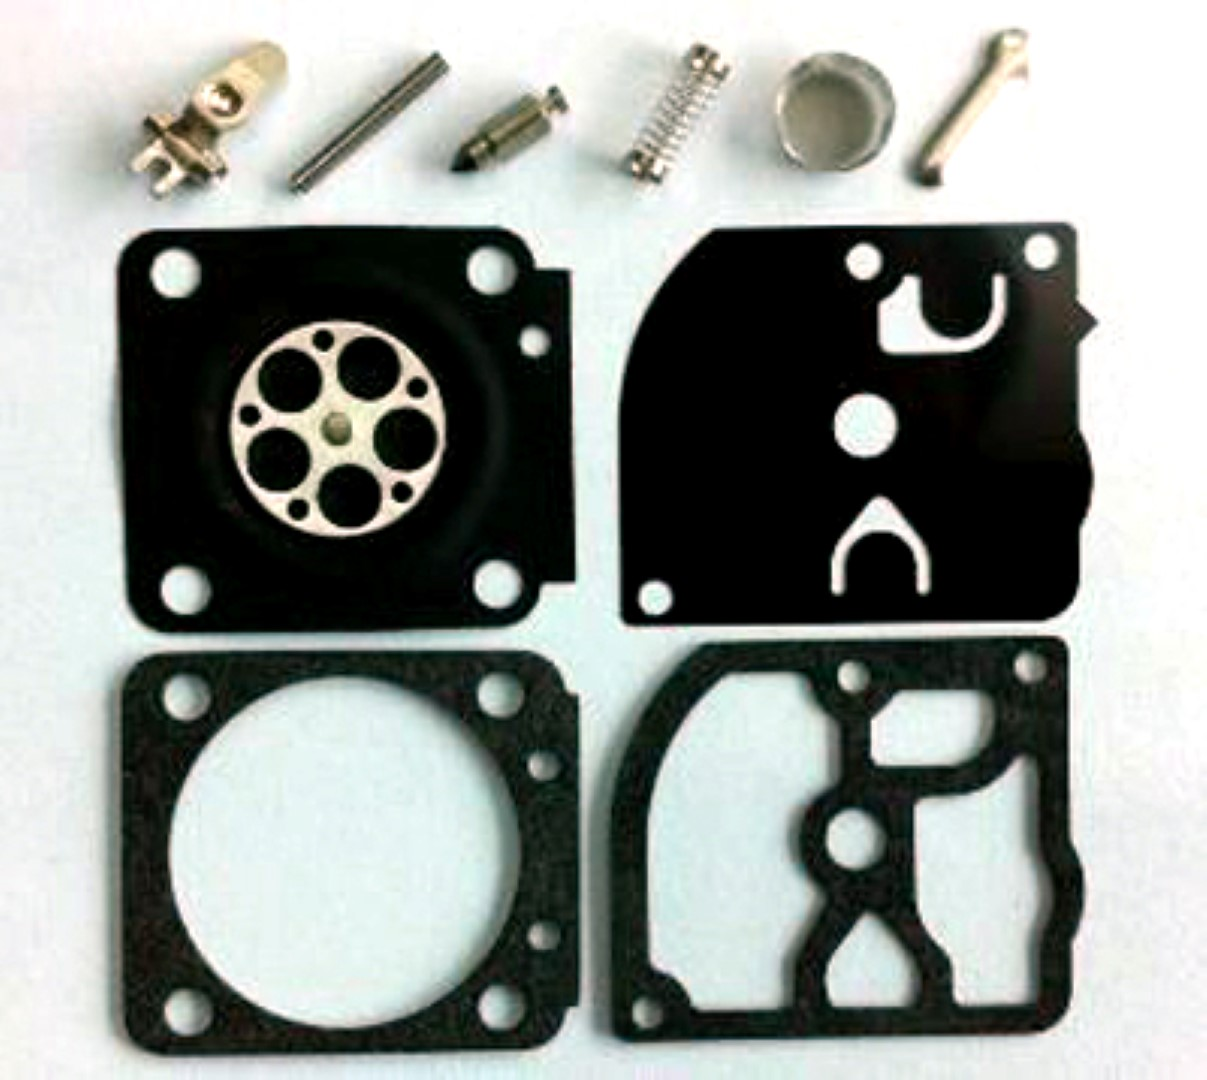 Zama RB-44 Carburetor Rebuild Kit